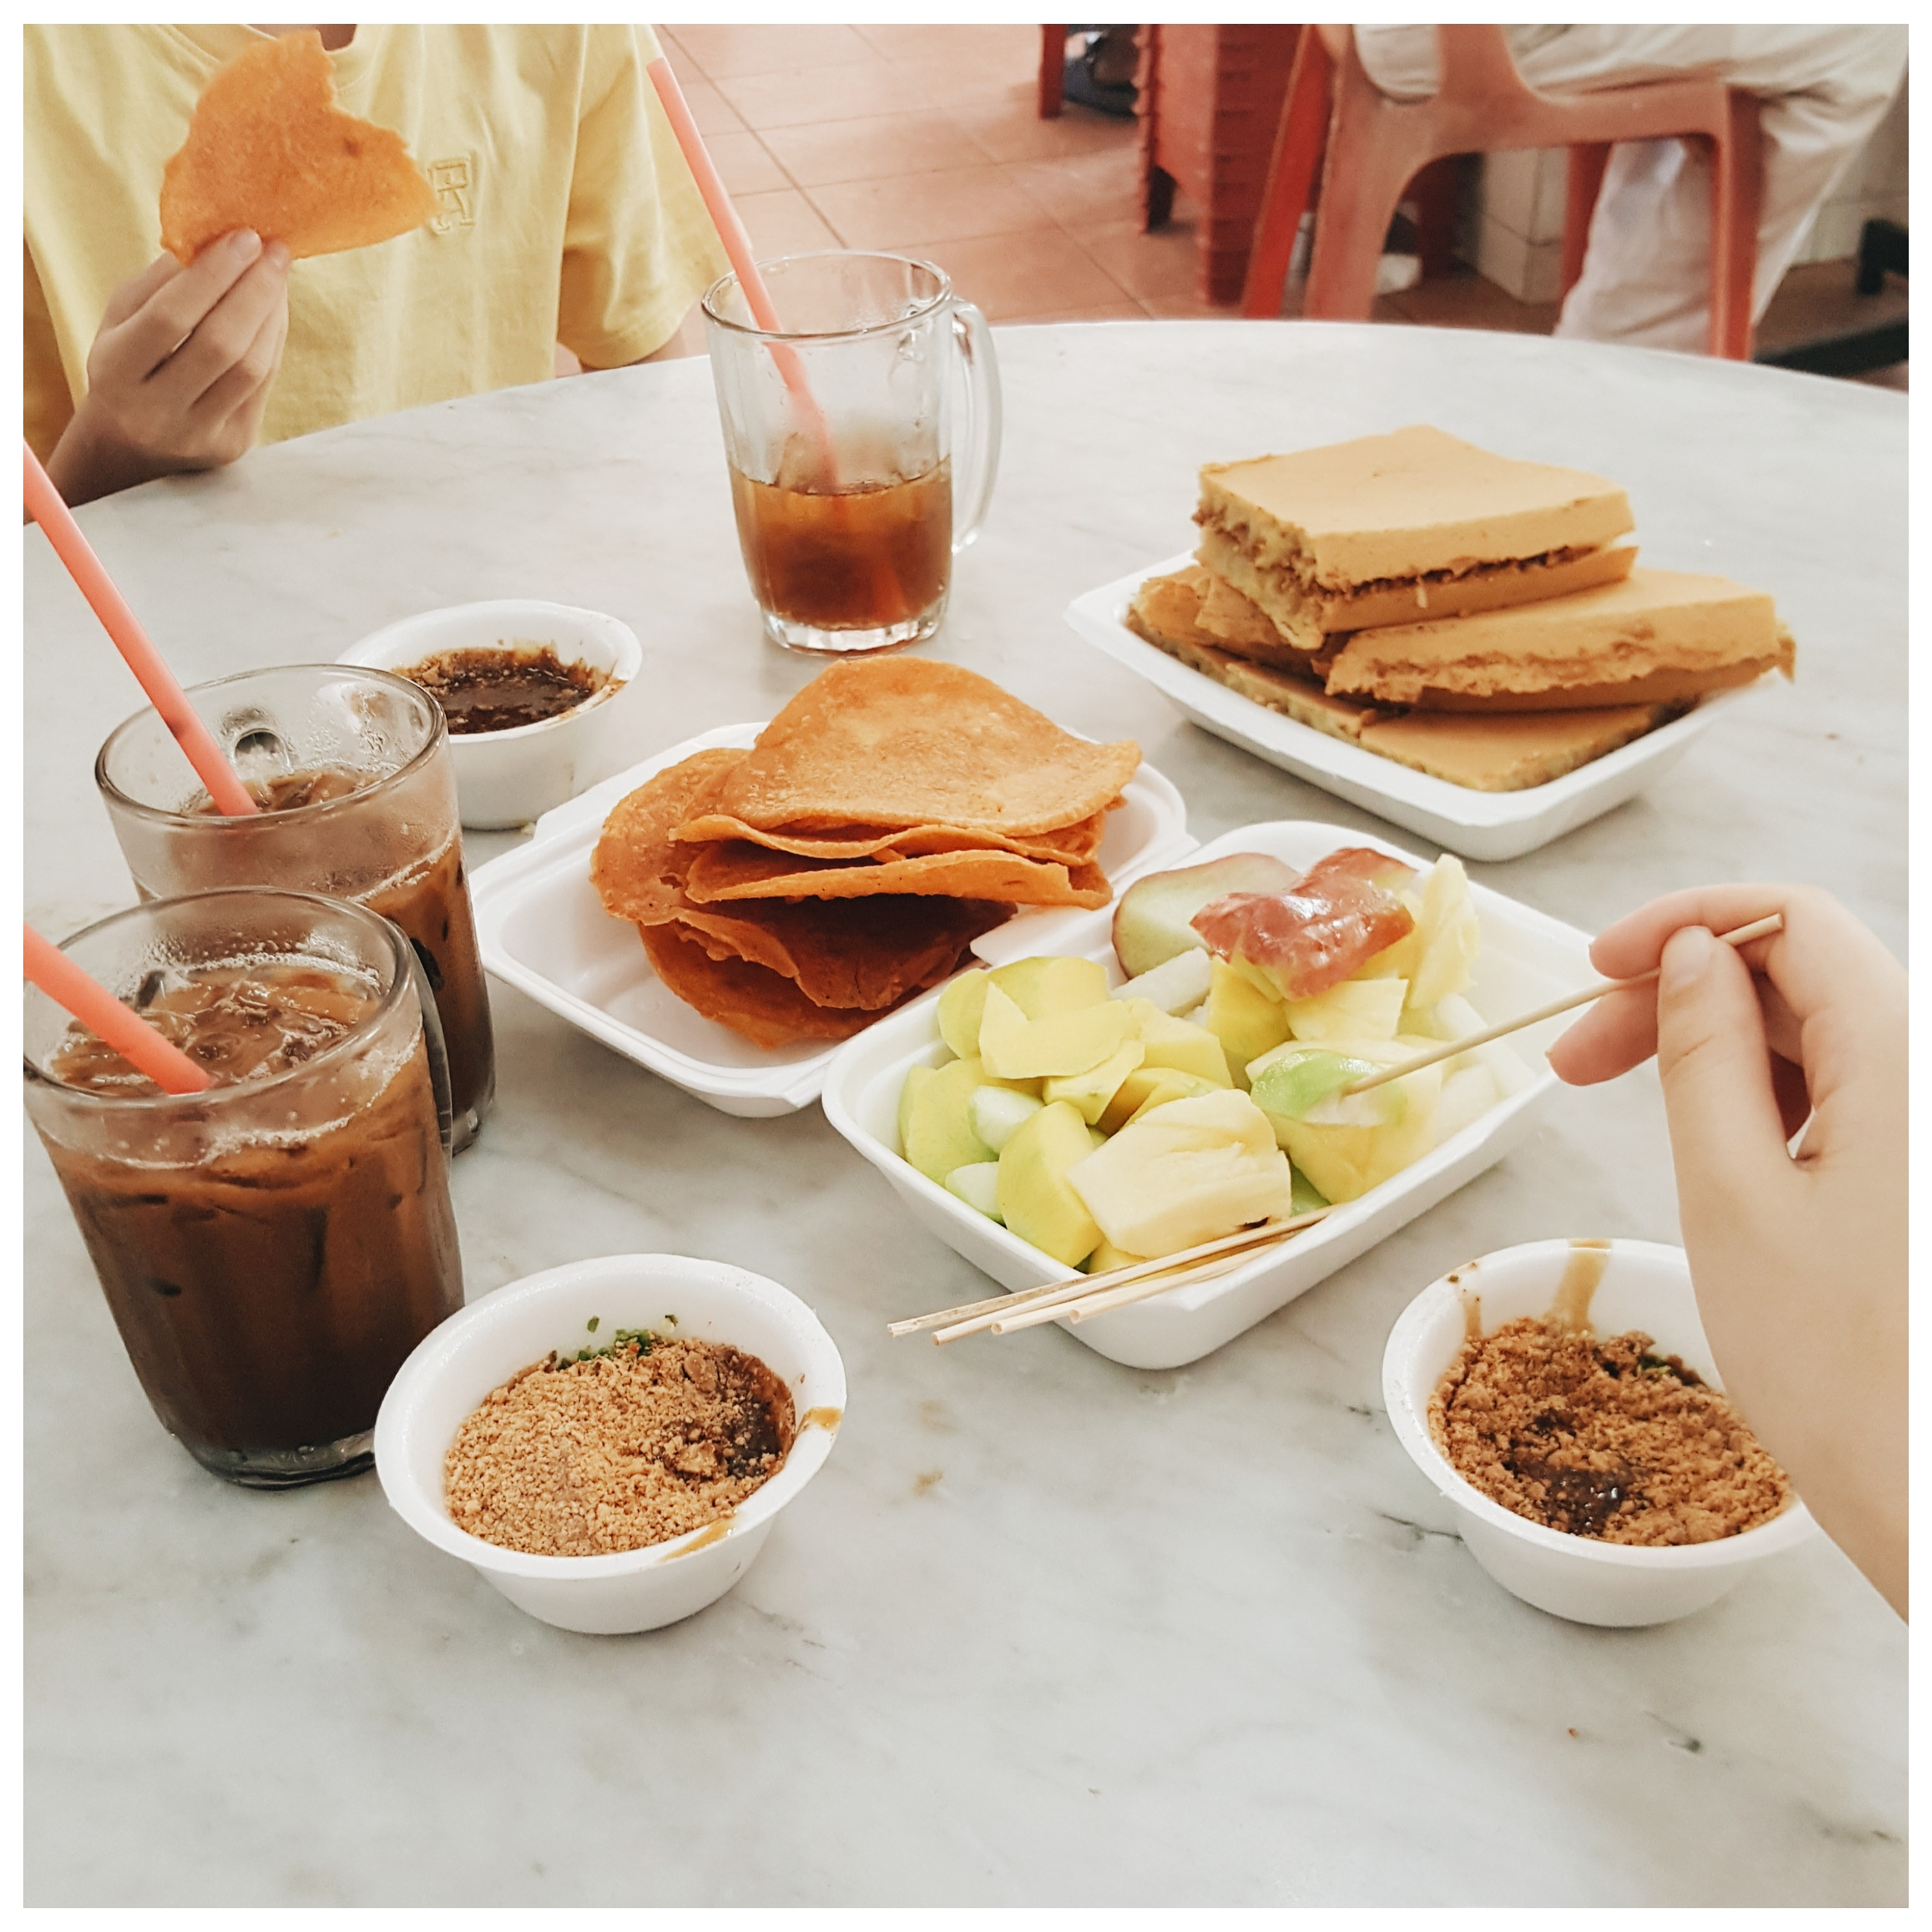 Daisybutter - Hong Kong Lifestyle and Fashion Blog: Ipoh rojak